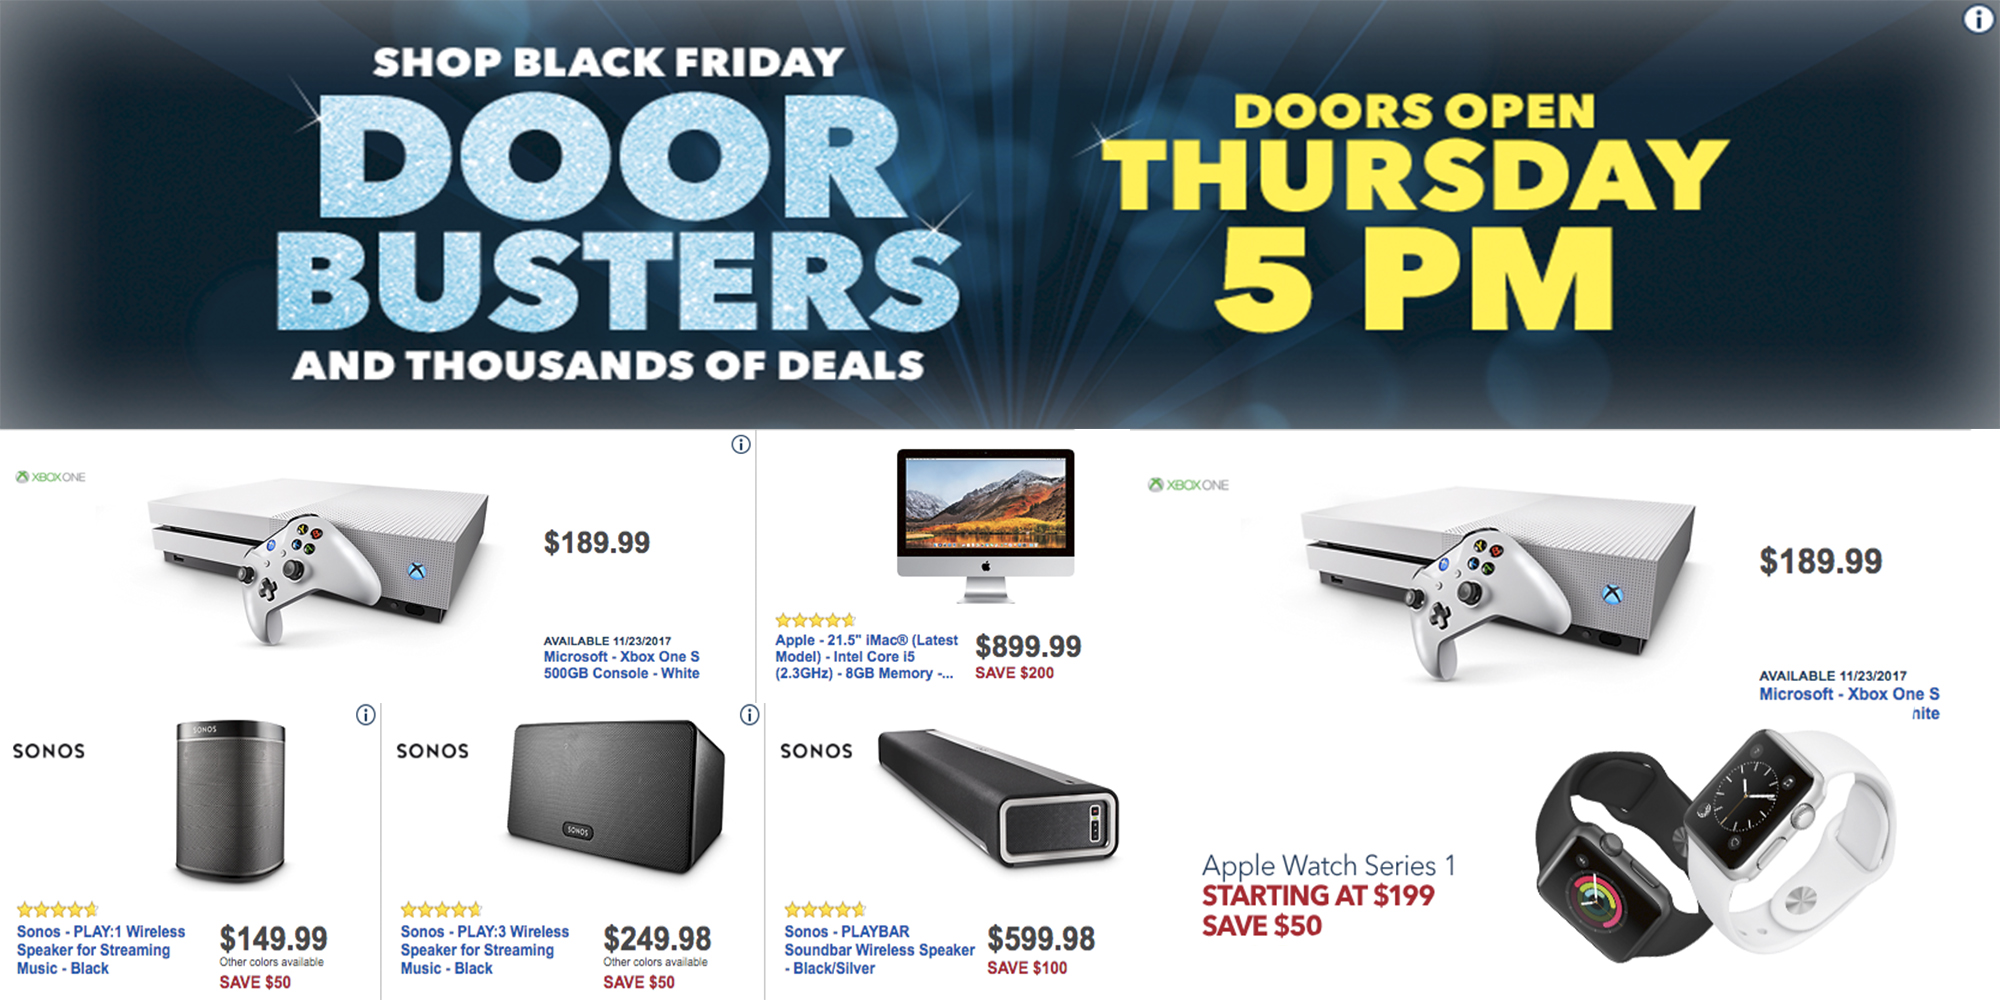 Best Buy's Black Friday 2017 ad hits w/ big Apple discounts, smart home gear, TVs, much more